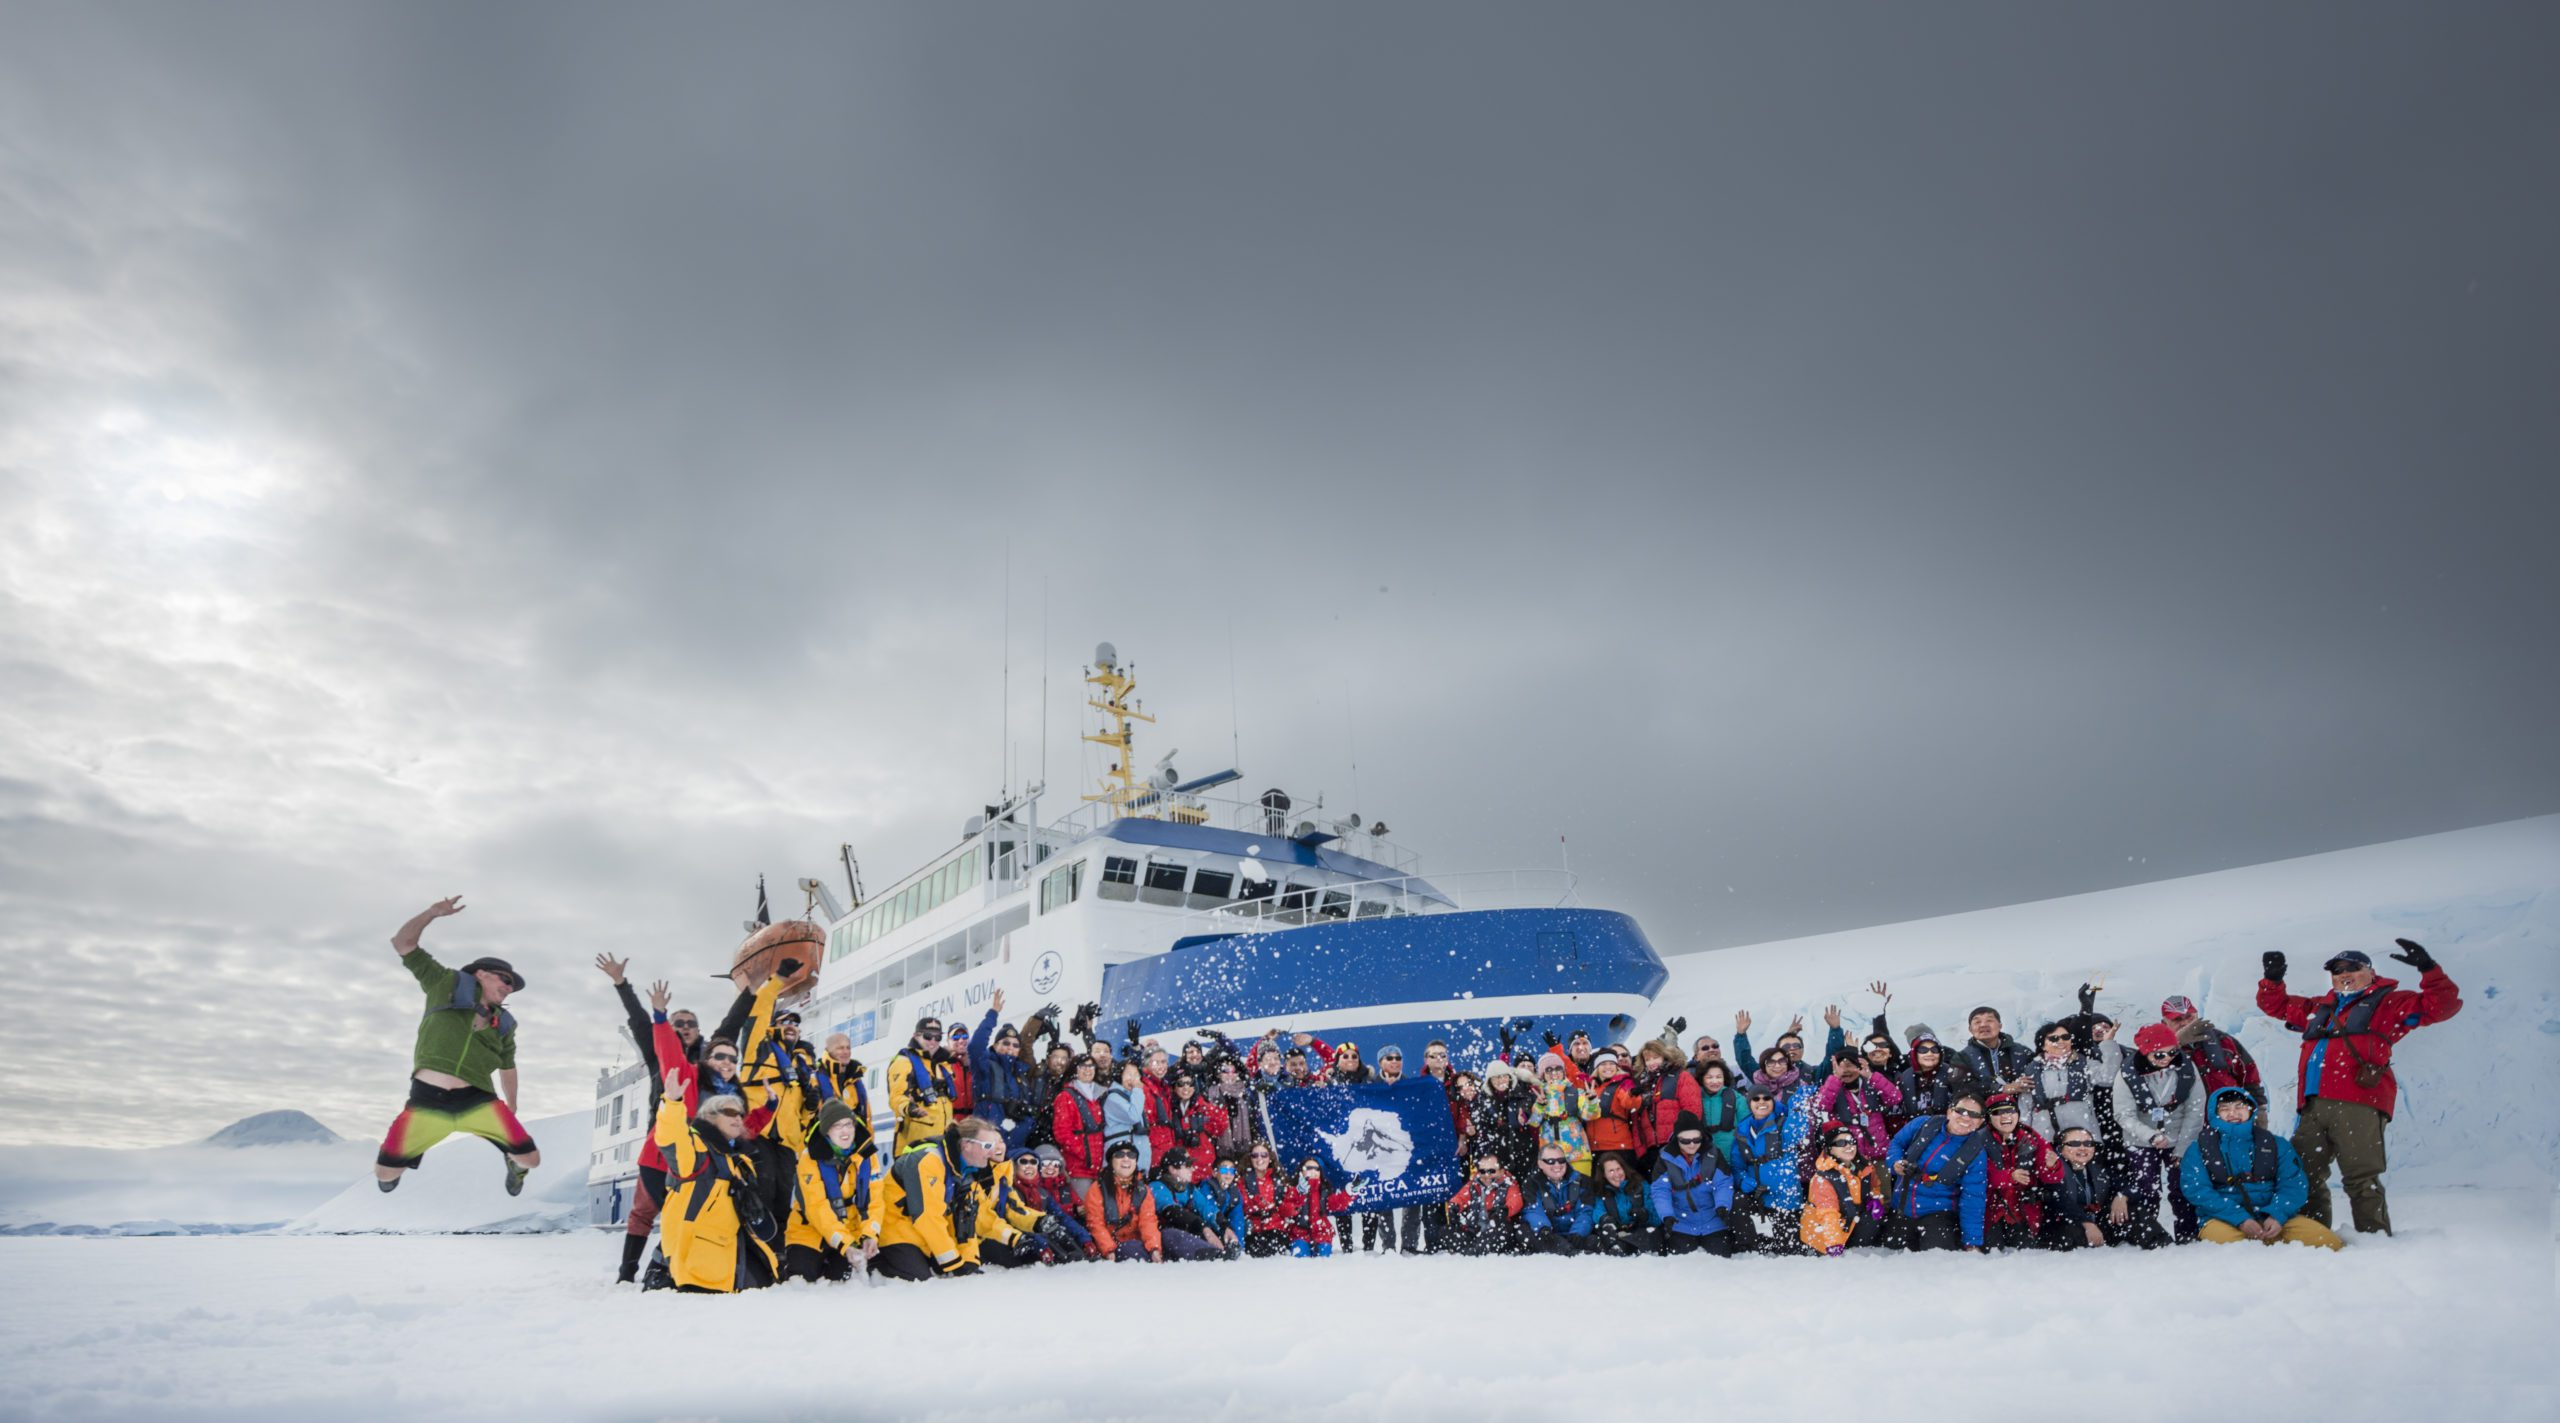 passengers and crew pose in front of their blue and white ice vessel celebrating their arrival to Antarctica